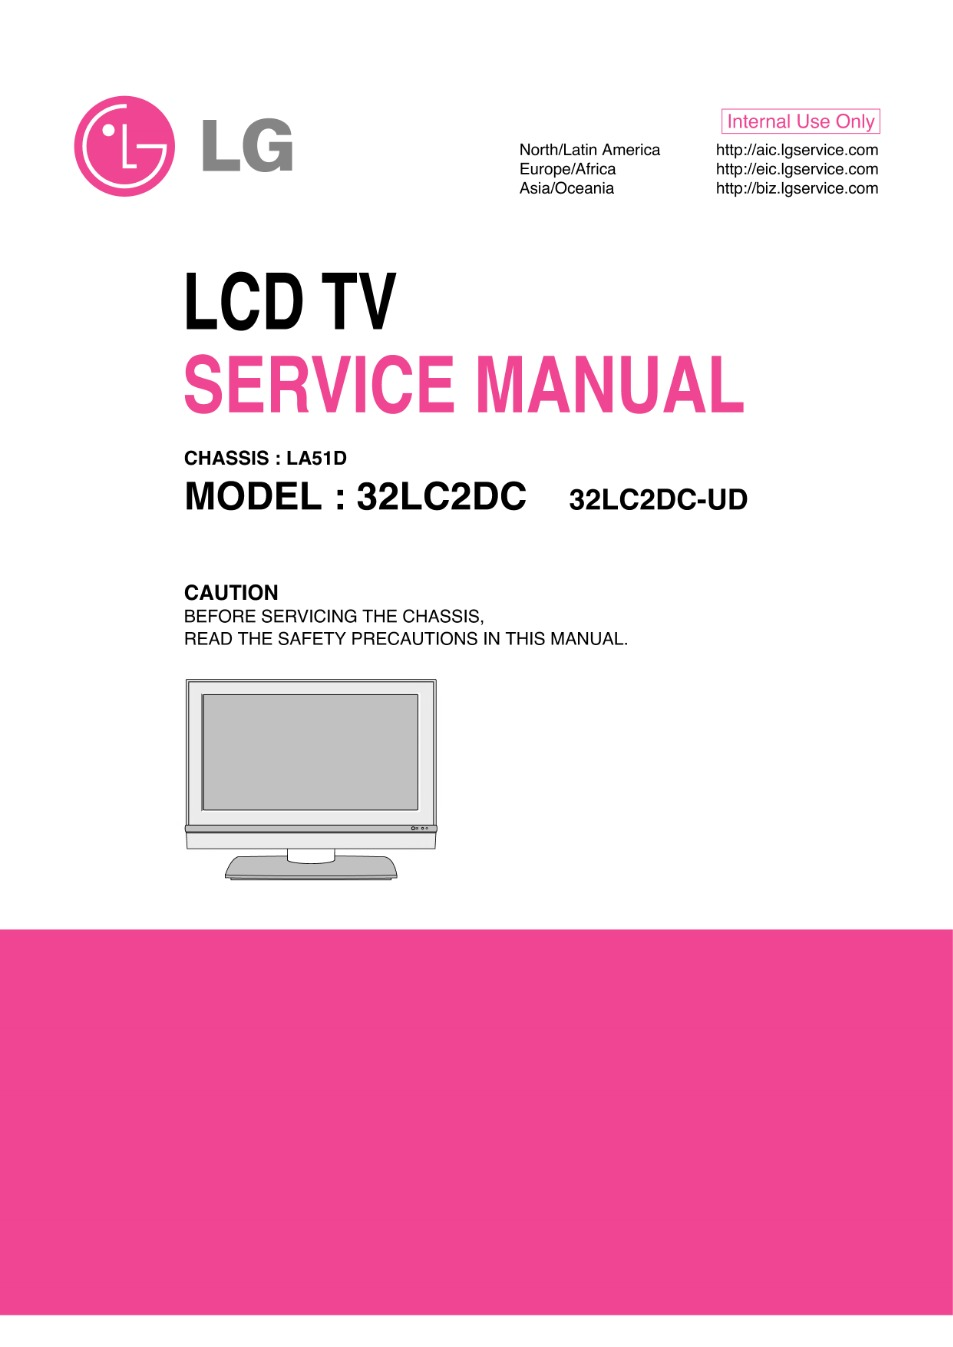 lg 32lc2d chassis lb61a service manual view online or download rh servlib com Customer Service Books Service Station